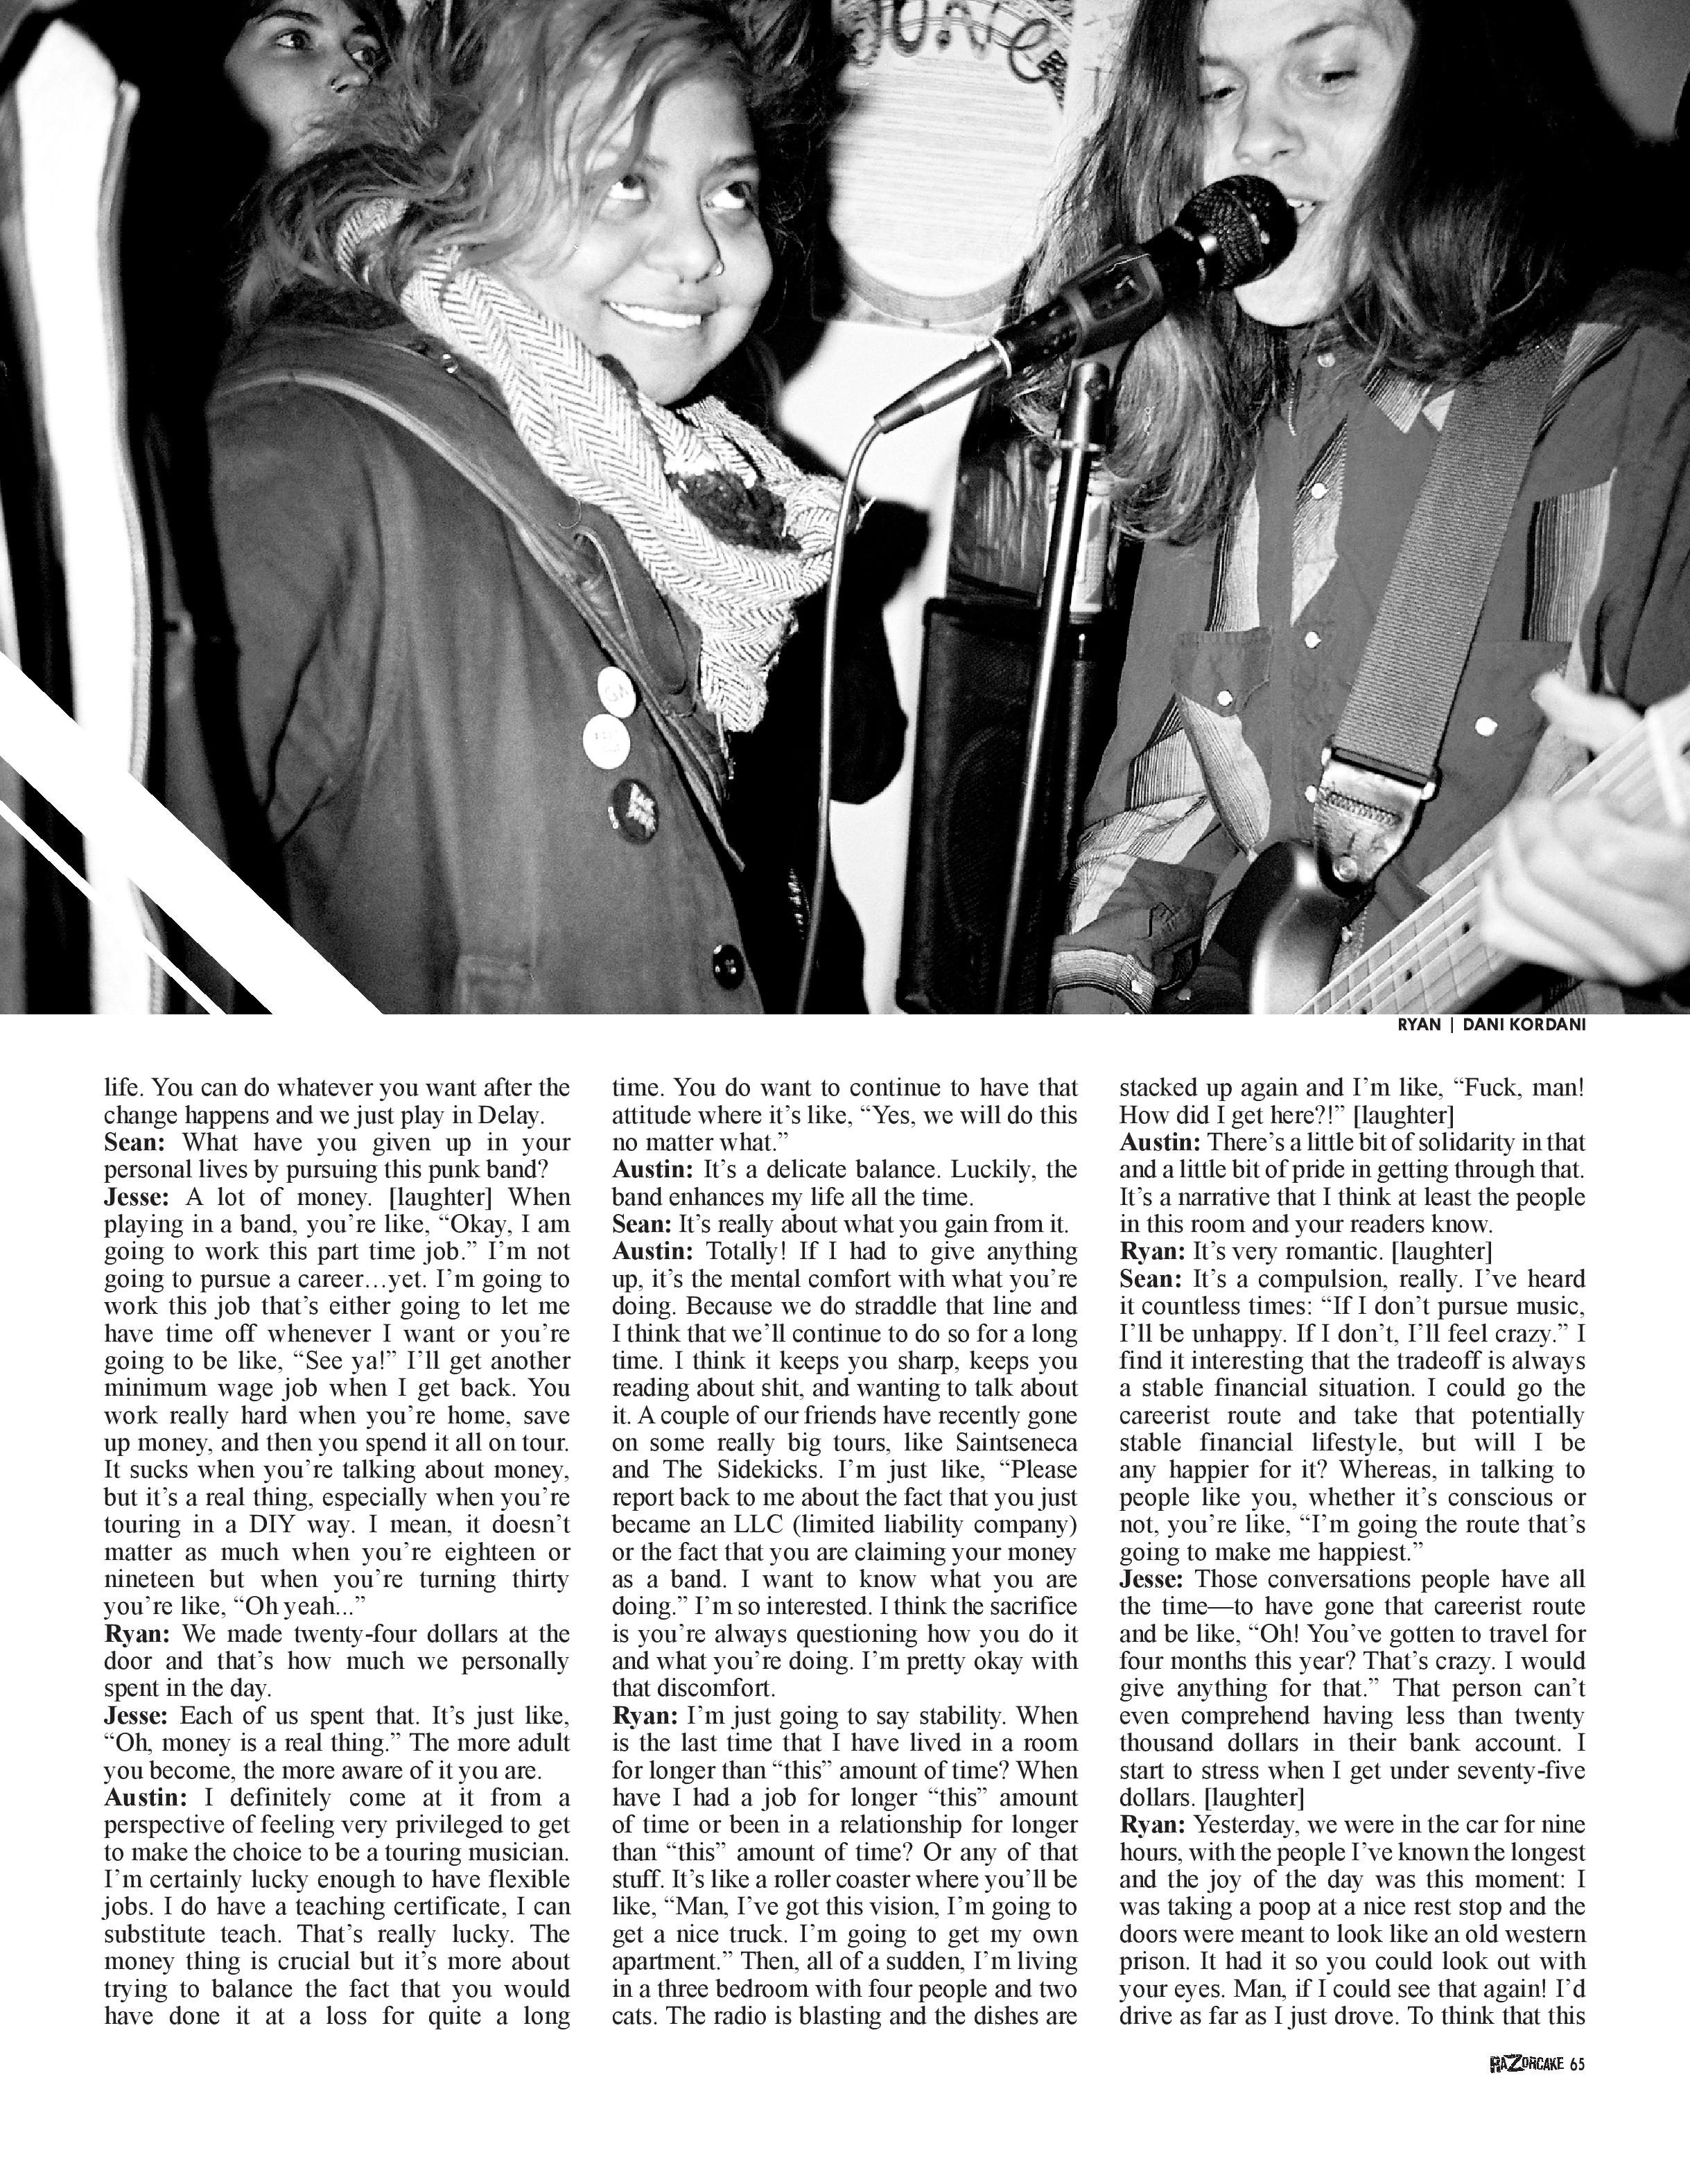 delay_interview-page-010.jpg